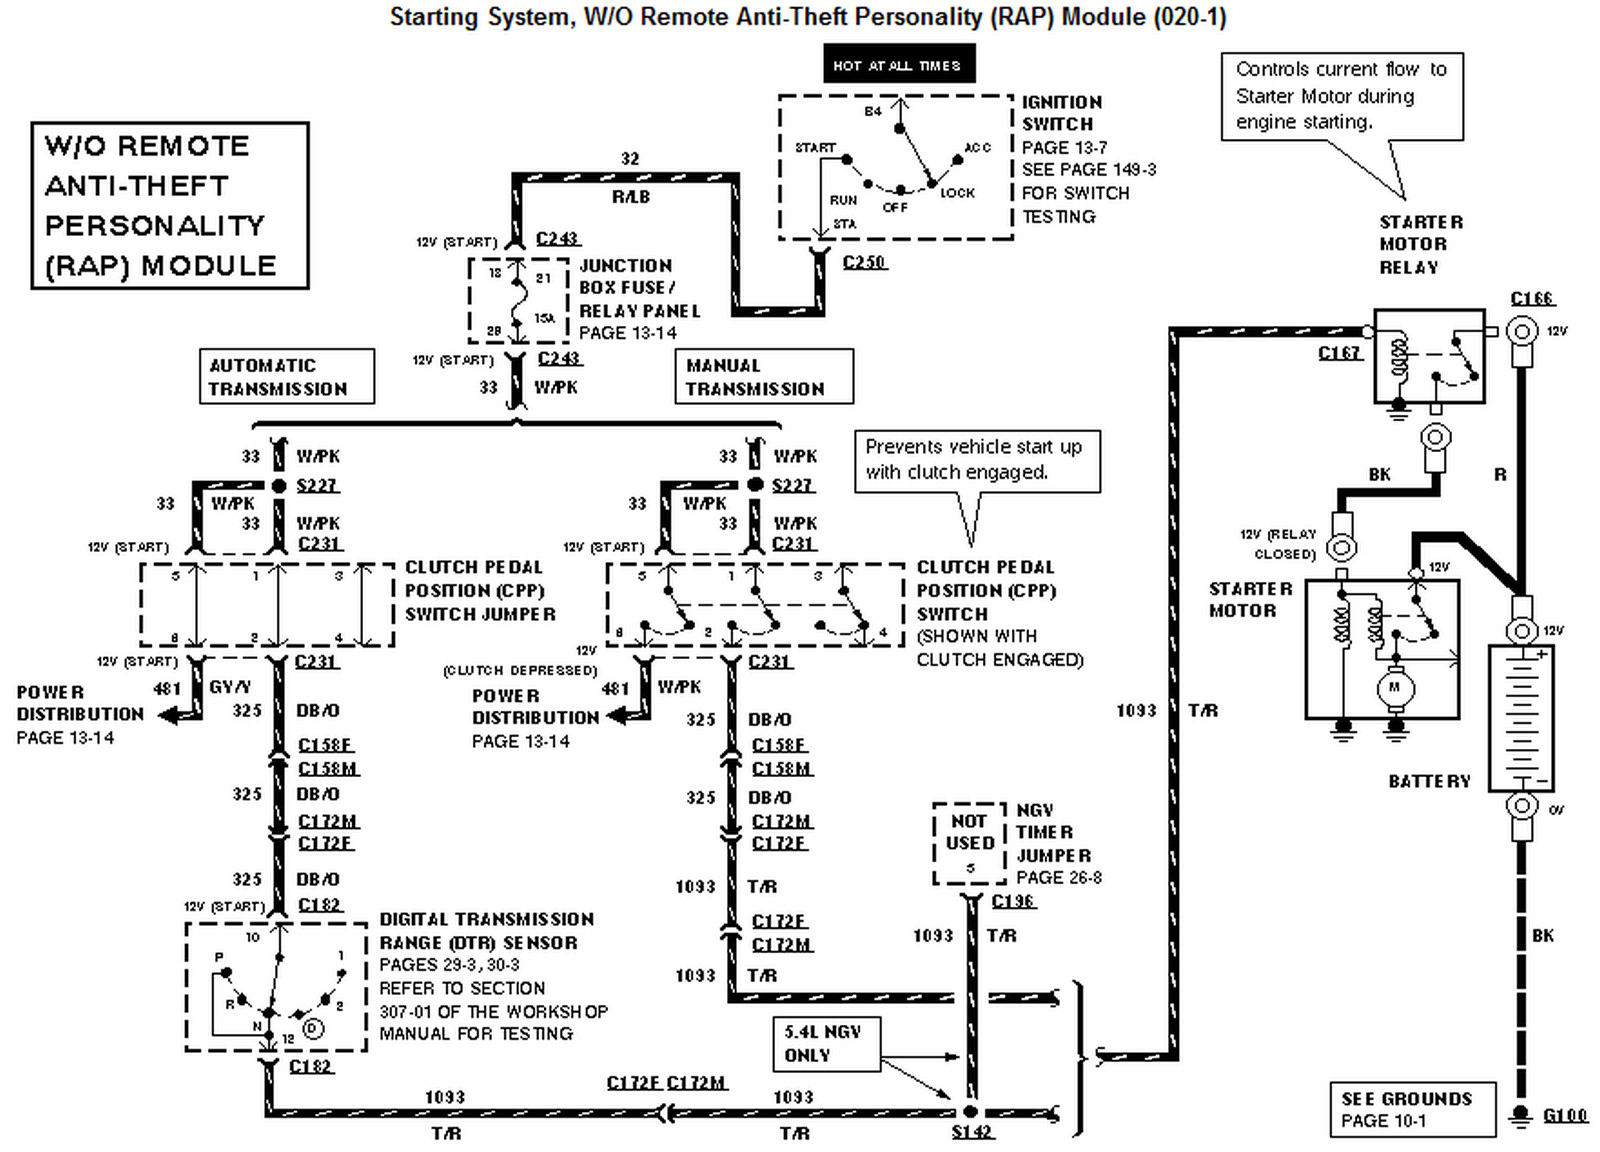 Wiring Diagram Ignition Switch : Pontiac grand prix fuse box diagram free